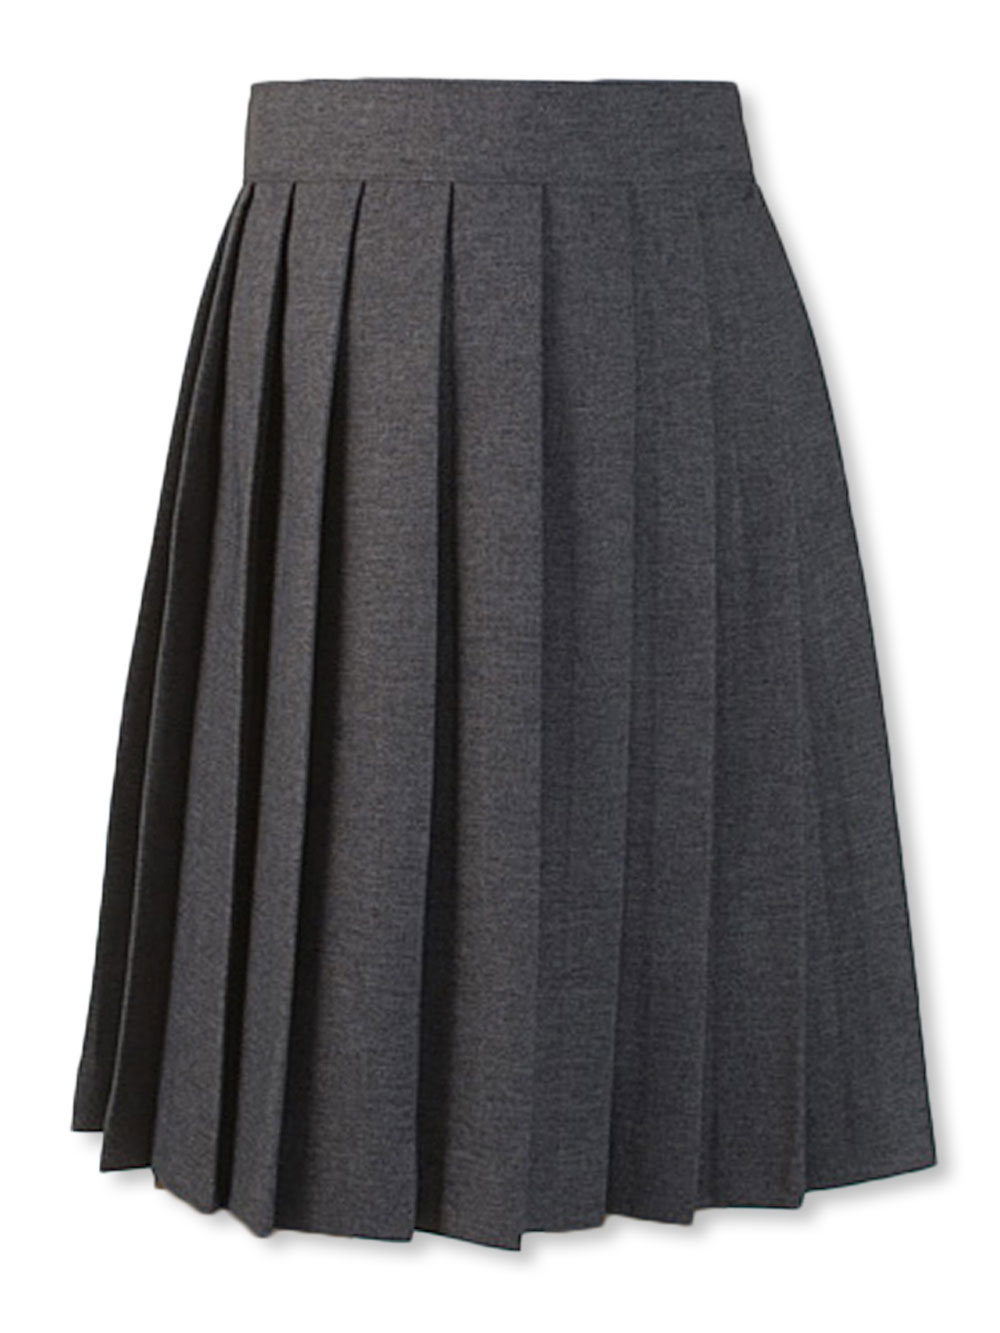 Size 6x Skirts for Girls